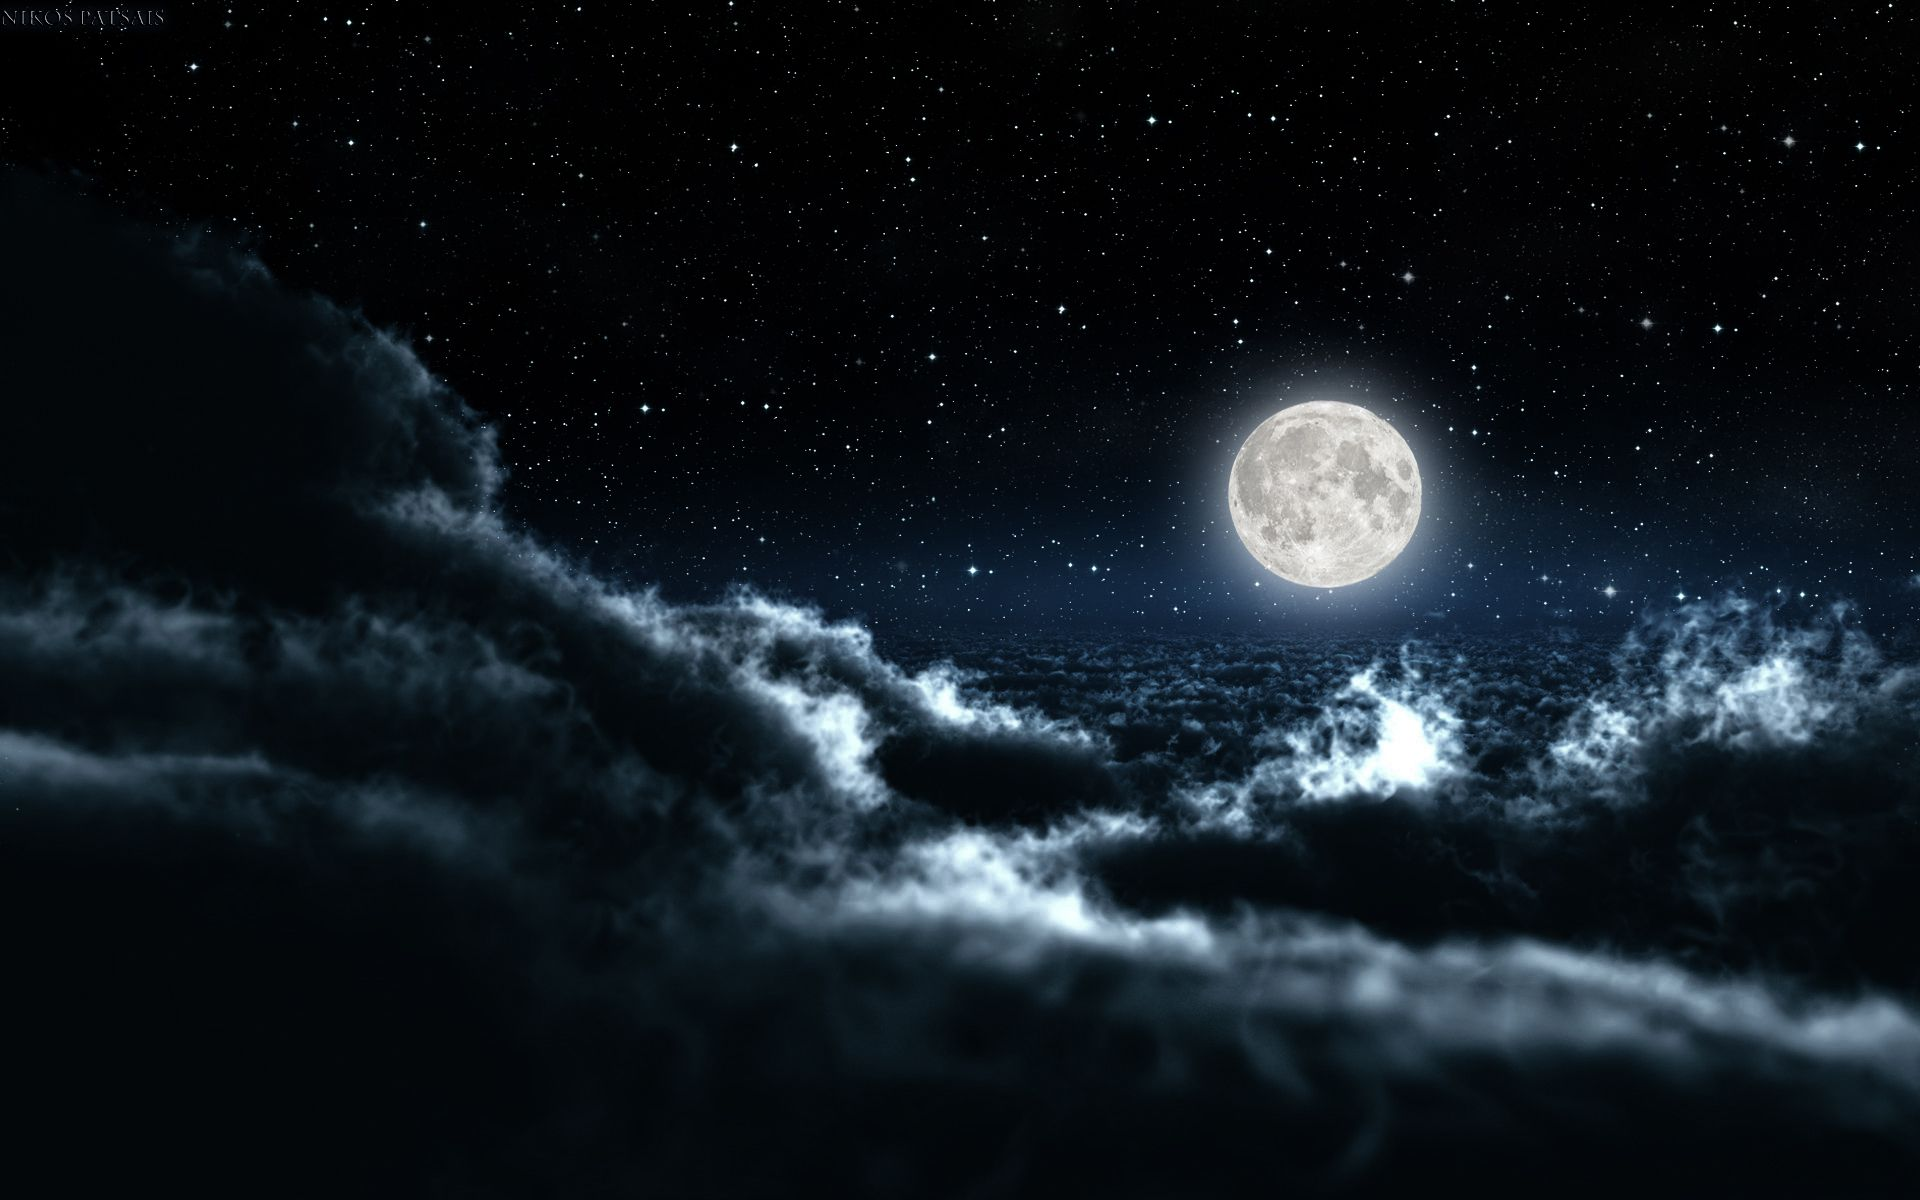 Night Sky Wallpapers Hd With High Definition Wallpaper 1920x1200 Px 773 62 Kb